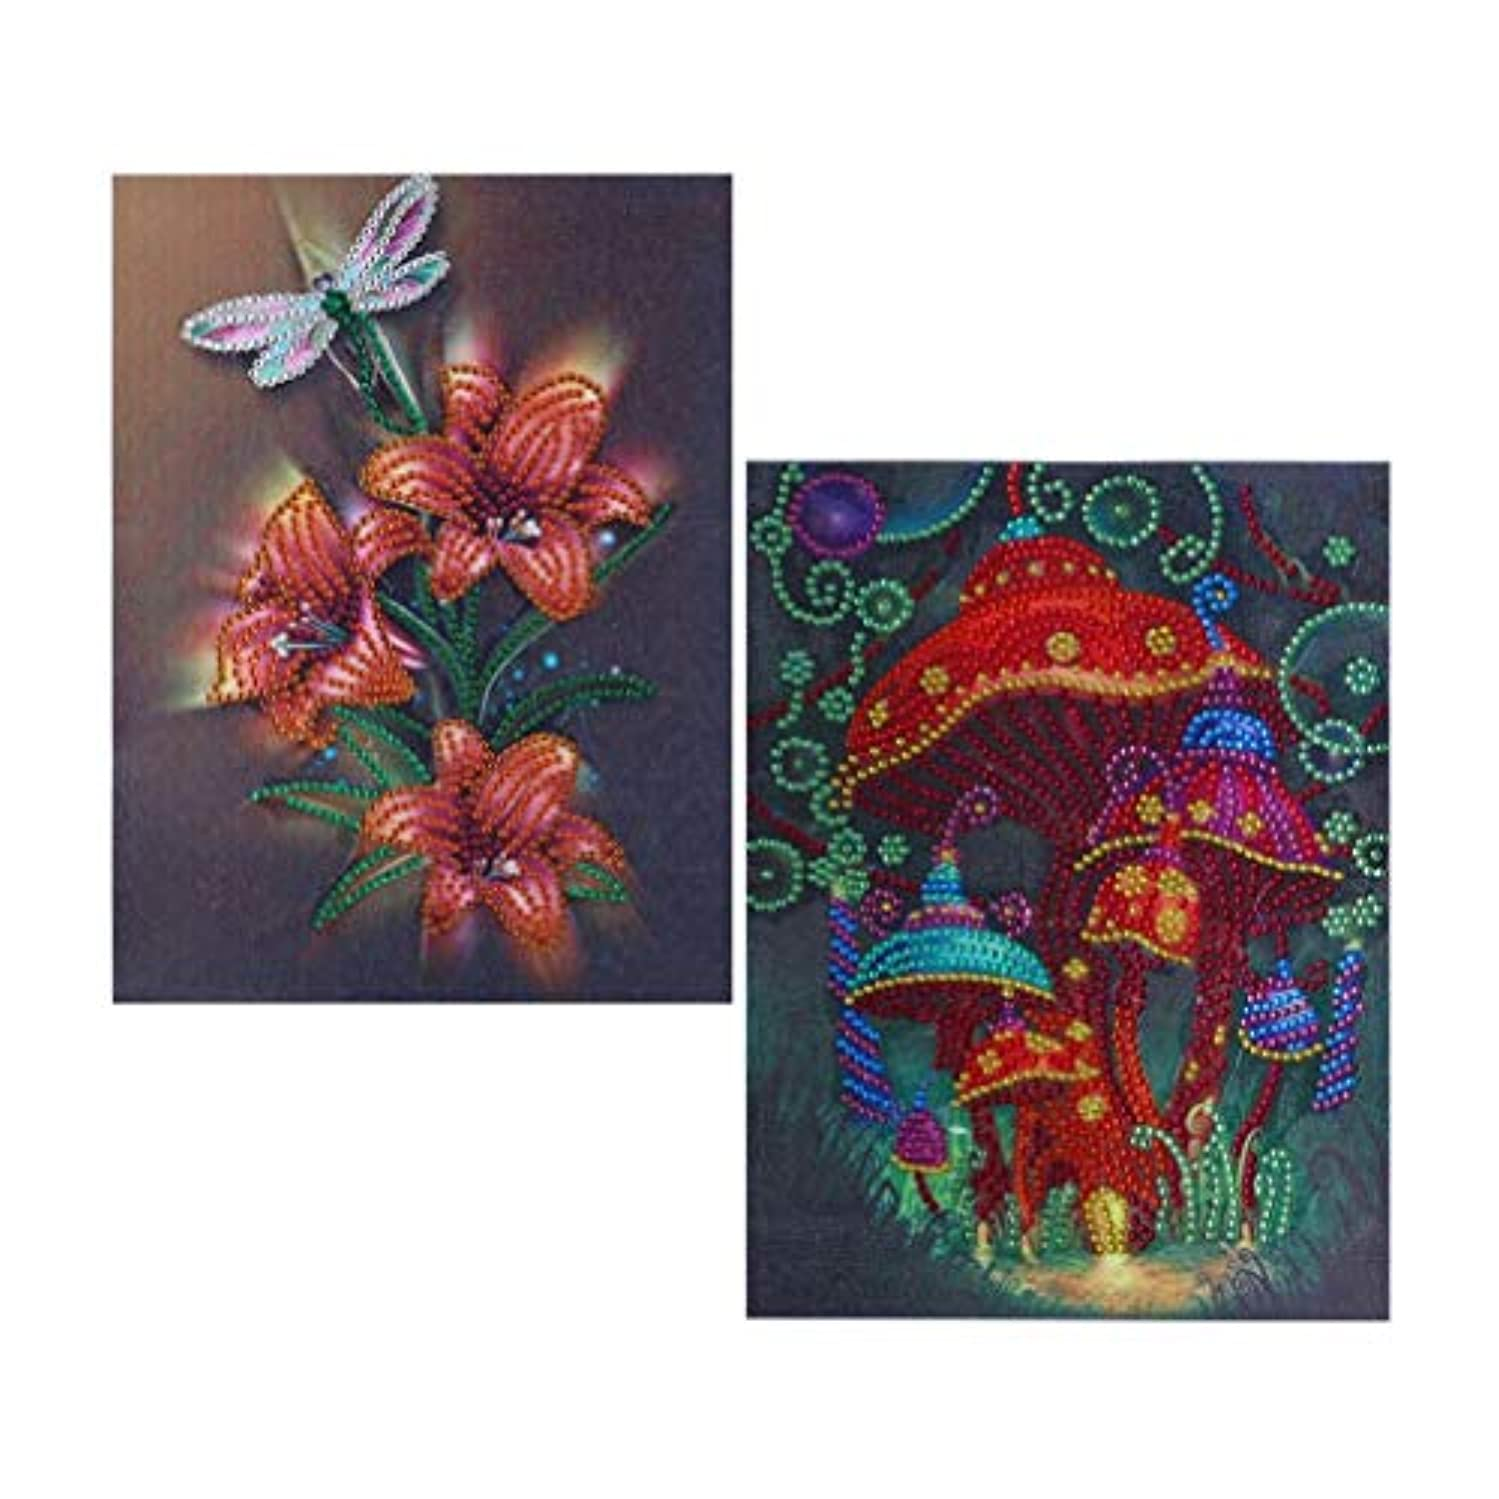 5D Diamond Painting Kits, DIY Diamond Cross Stitch by Numbers, Crystal Rhinestone Embroidery Paintings Pictures Arts Craft for Home Wall Décor by UmbWorld, 2 Pack 10''x 12'' (Flower Set 1)